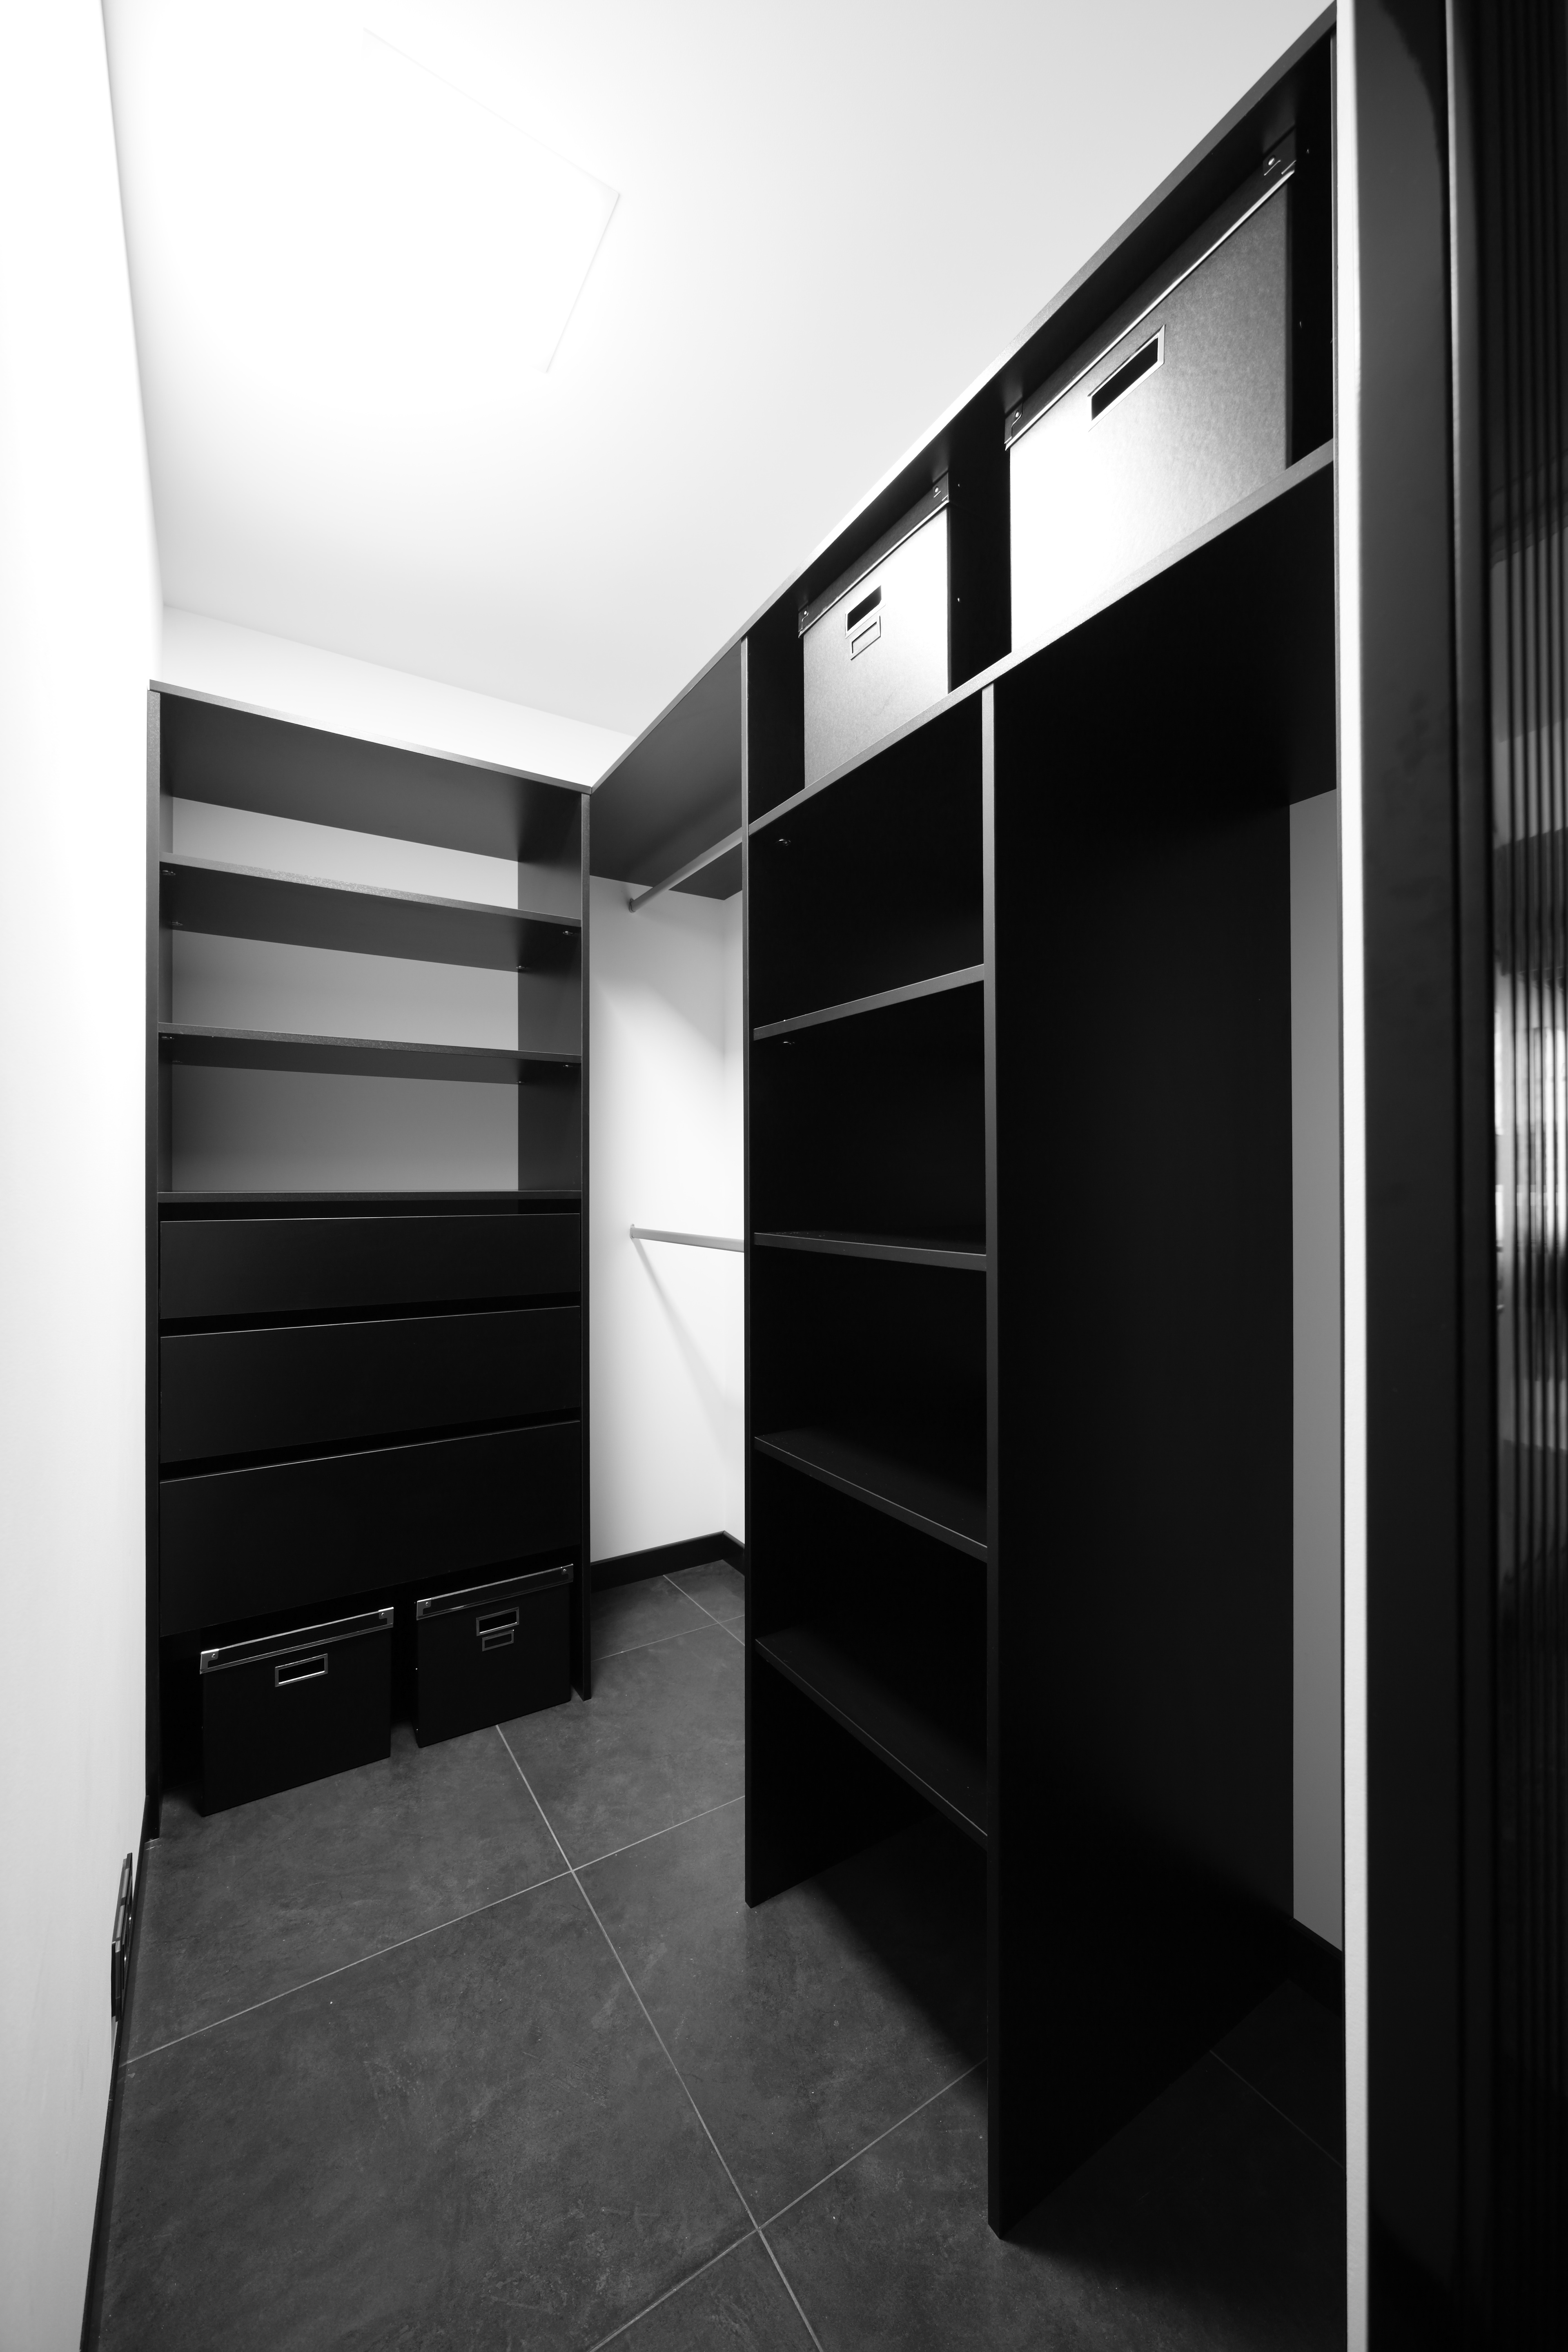 Walk In Closet Designs For Every Personality Type photo - 1